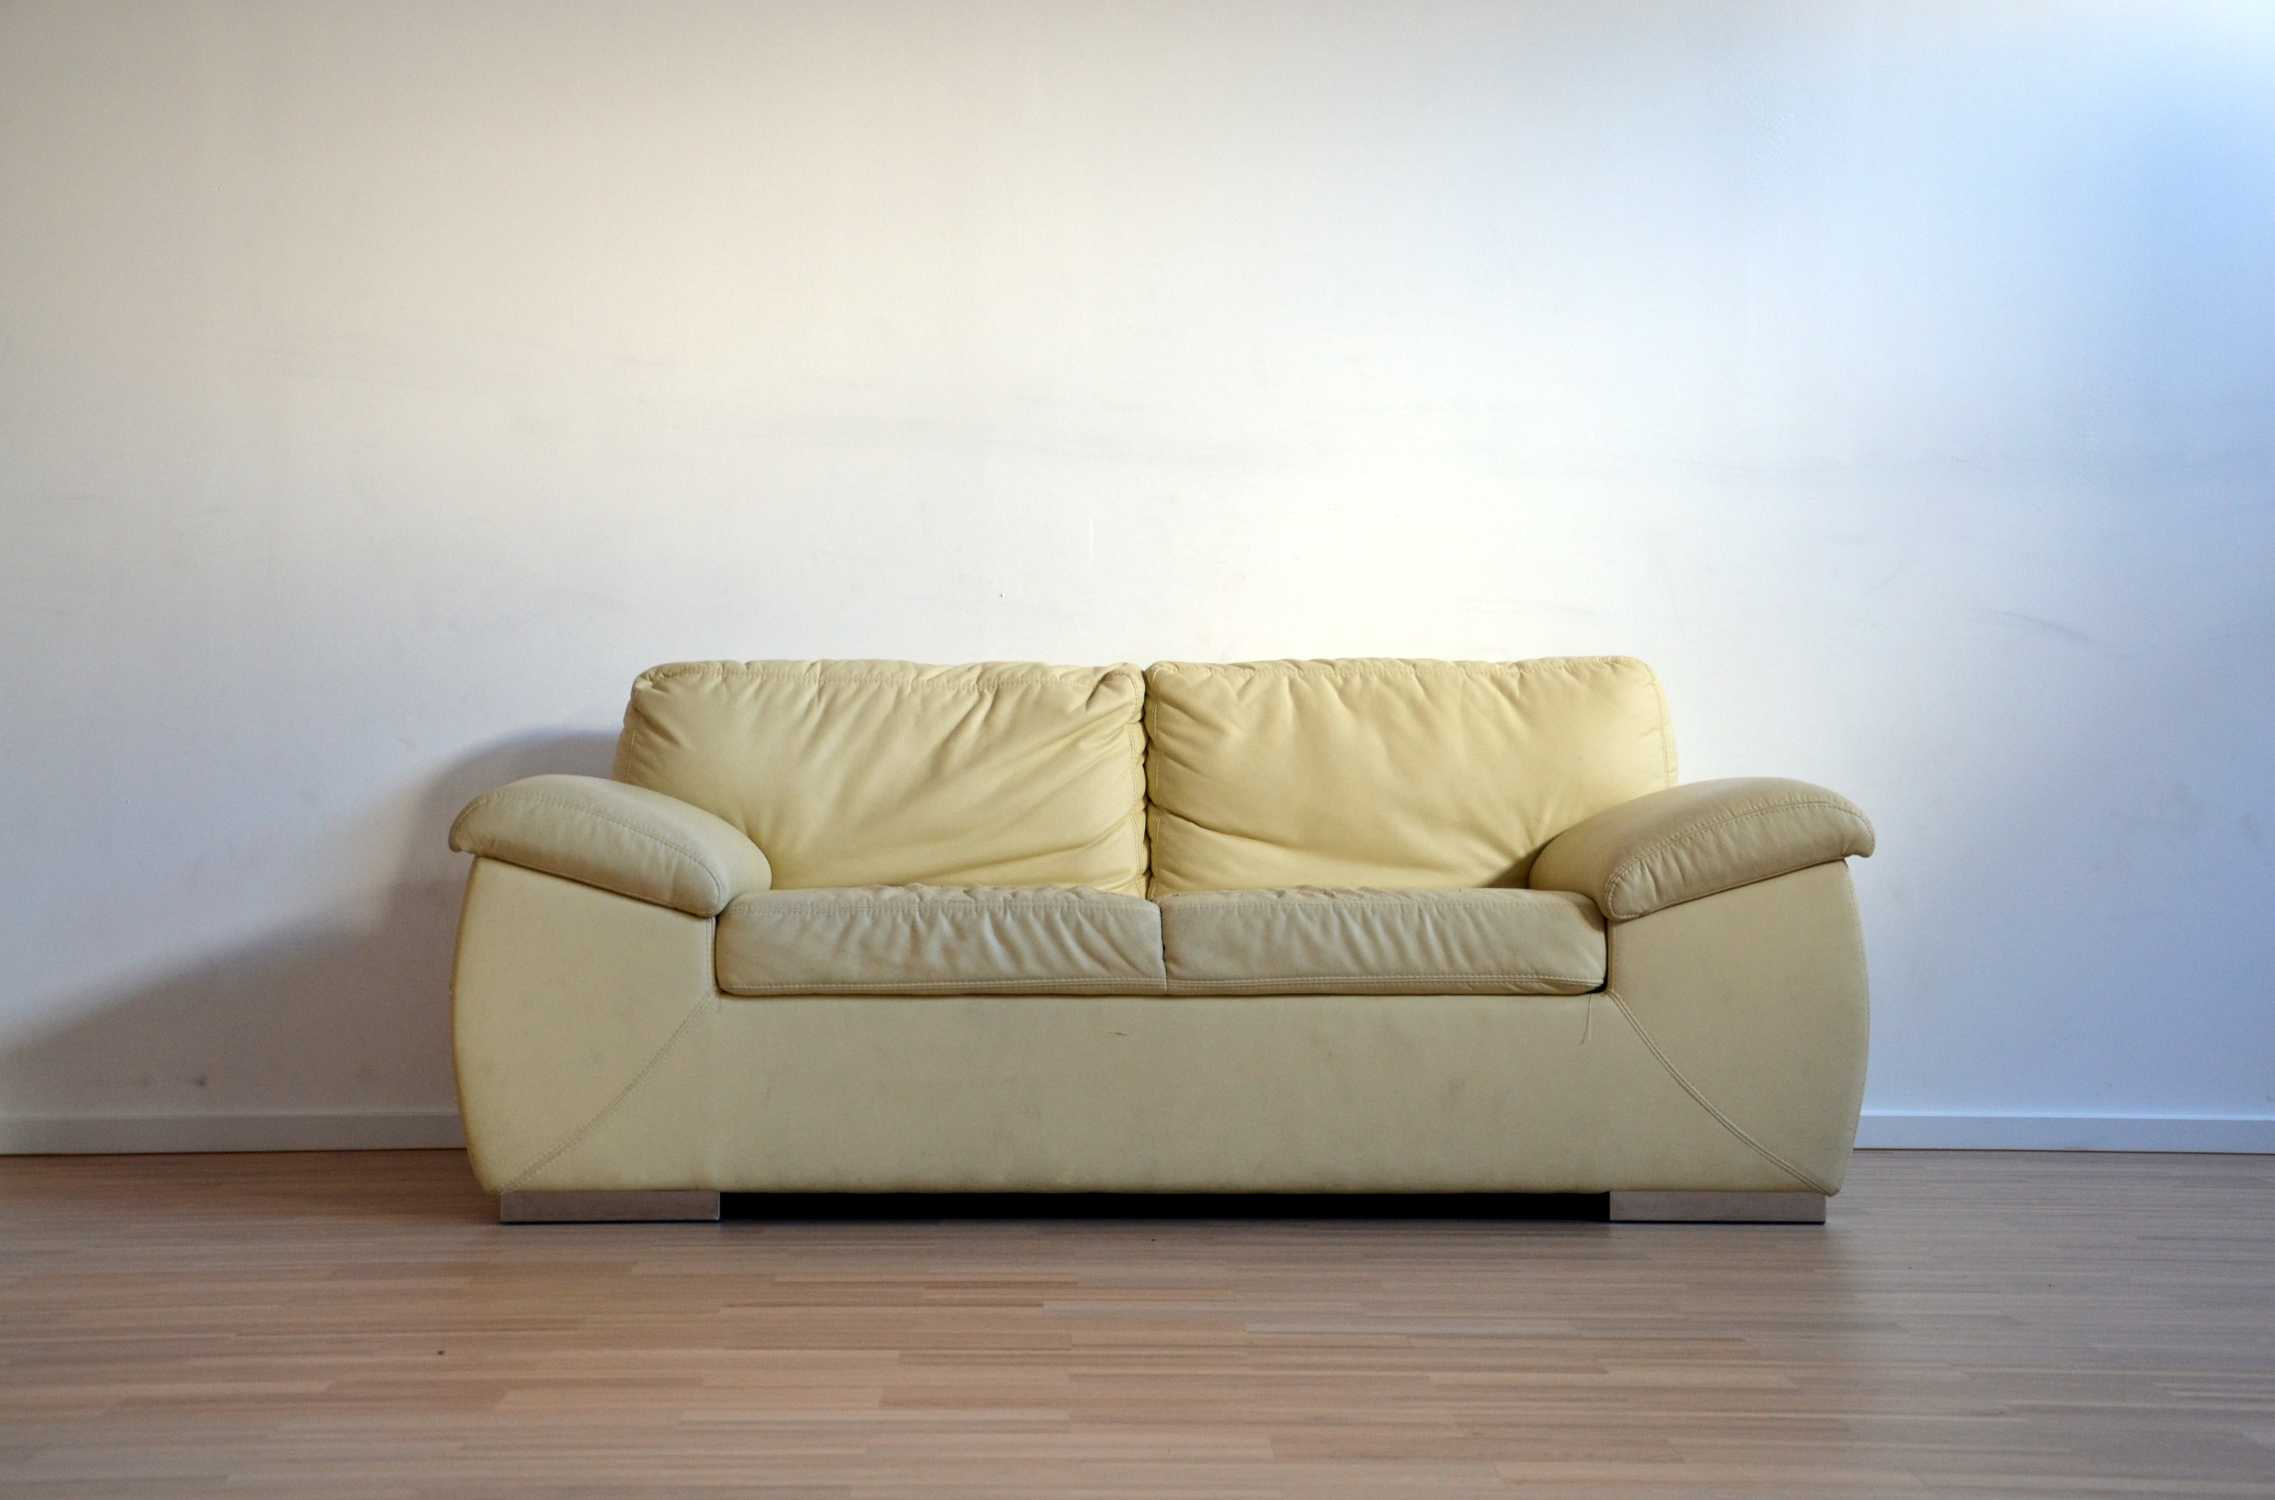 Best sofa to Buy in India